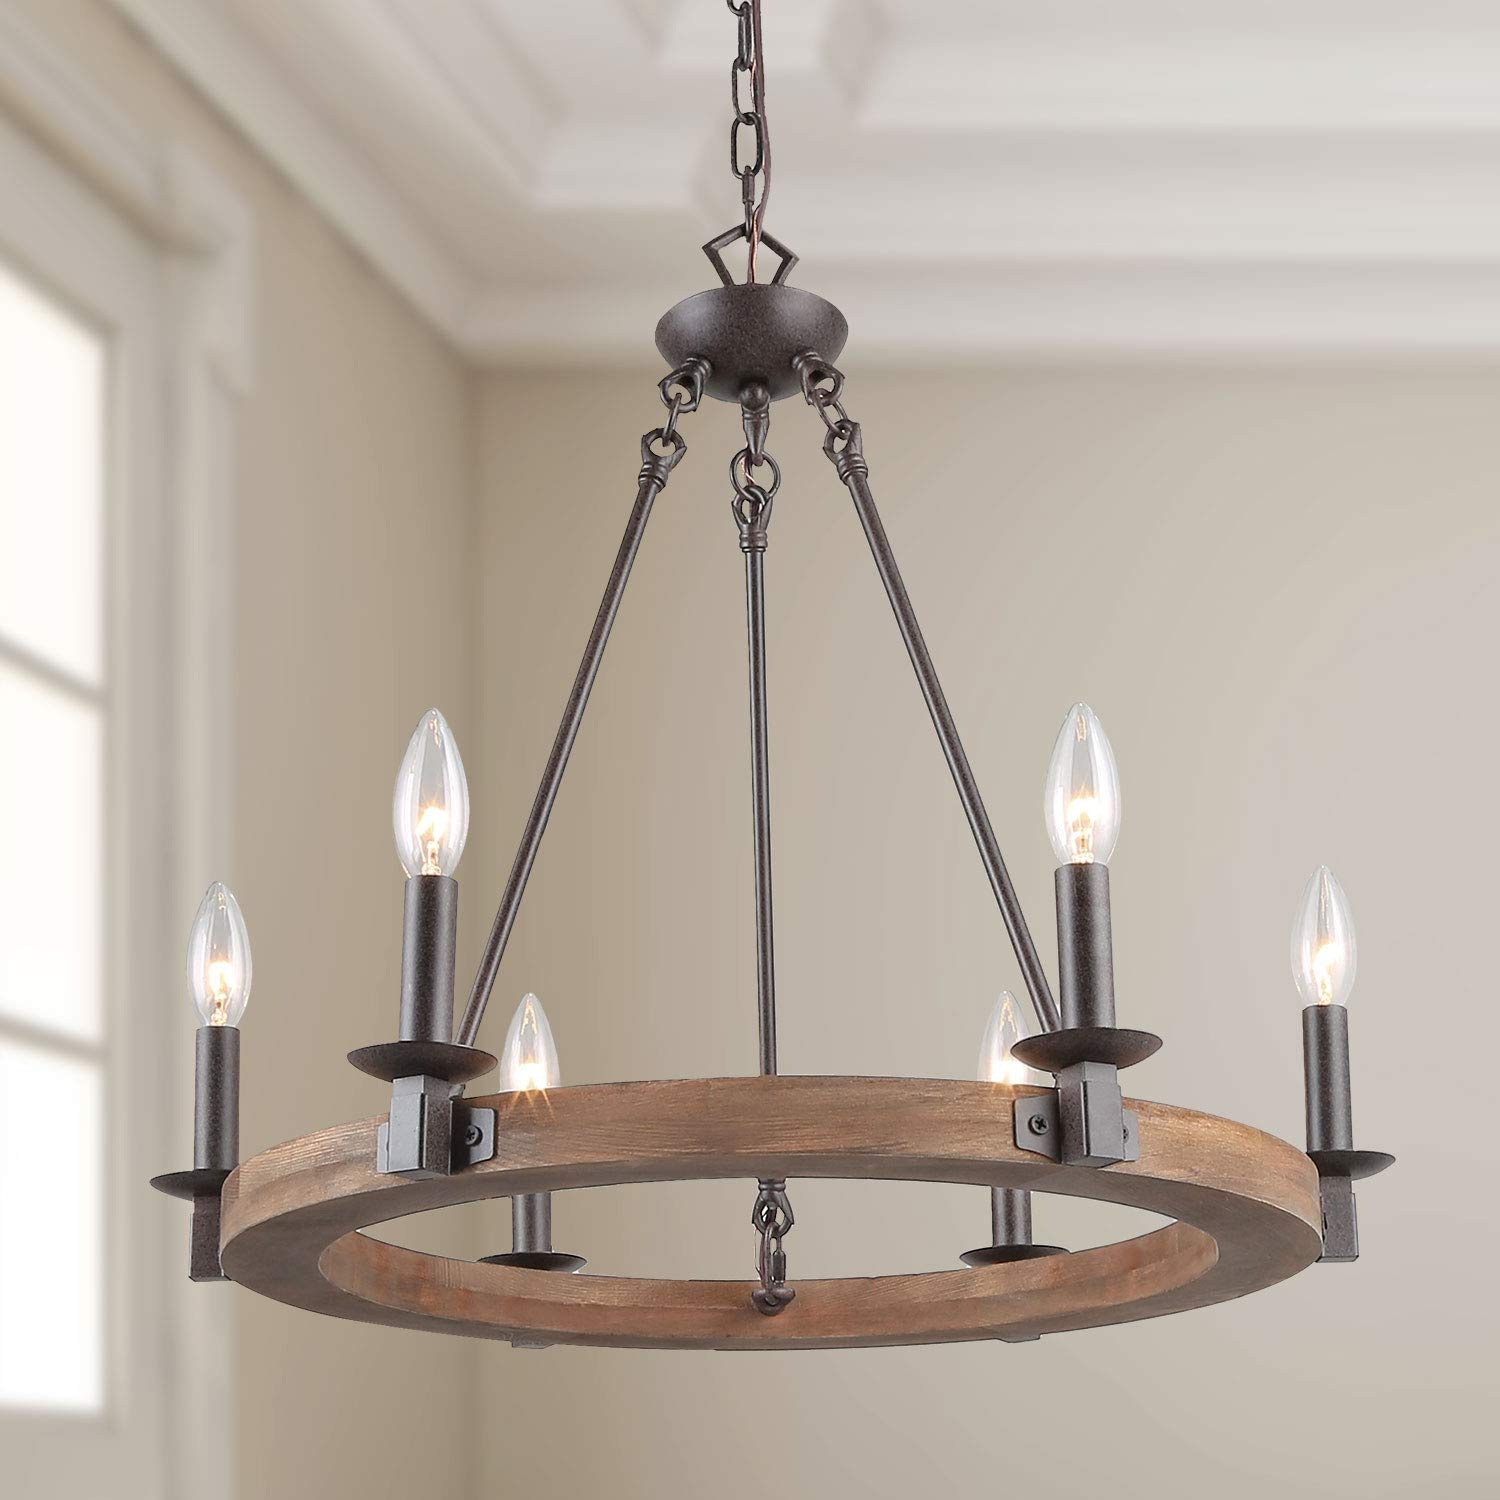 LNC Farmhouse Chandelier, Pendant Lighting for for Kitchen Island Dining Rooms Bedrooms, A03300